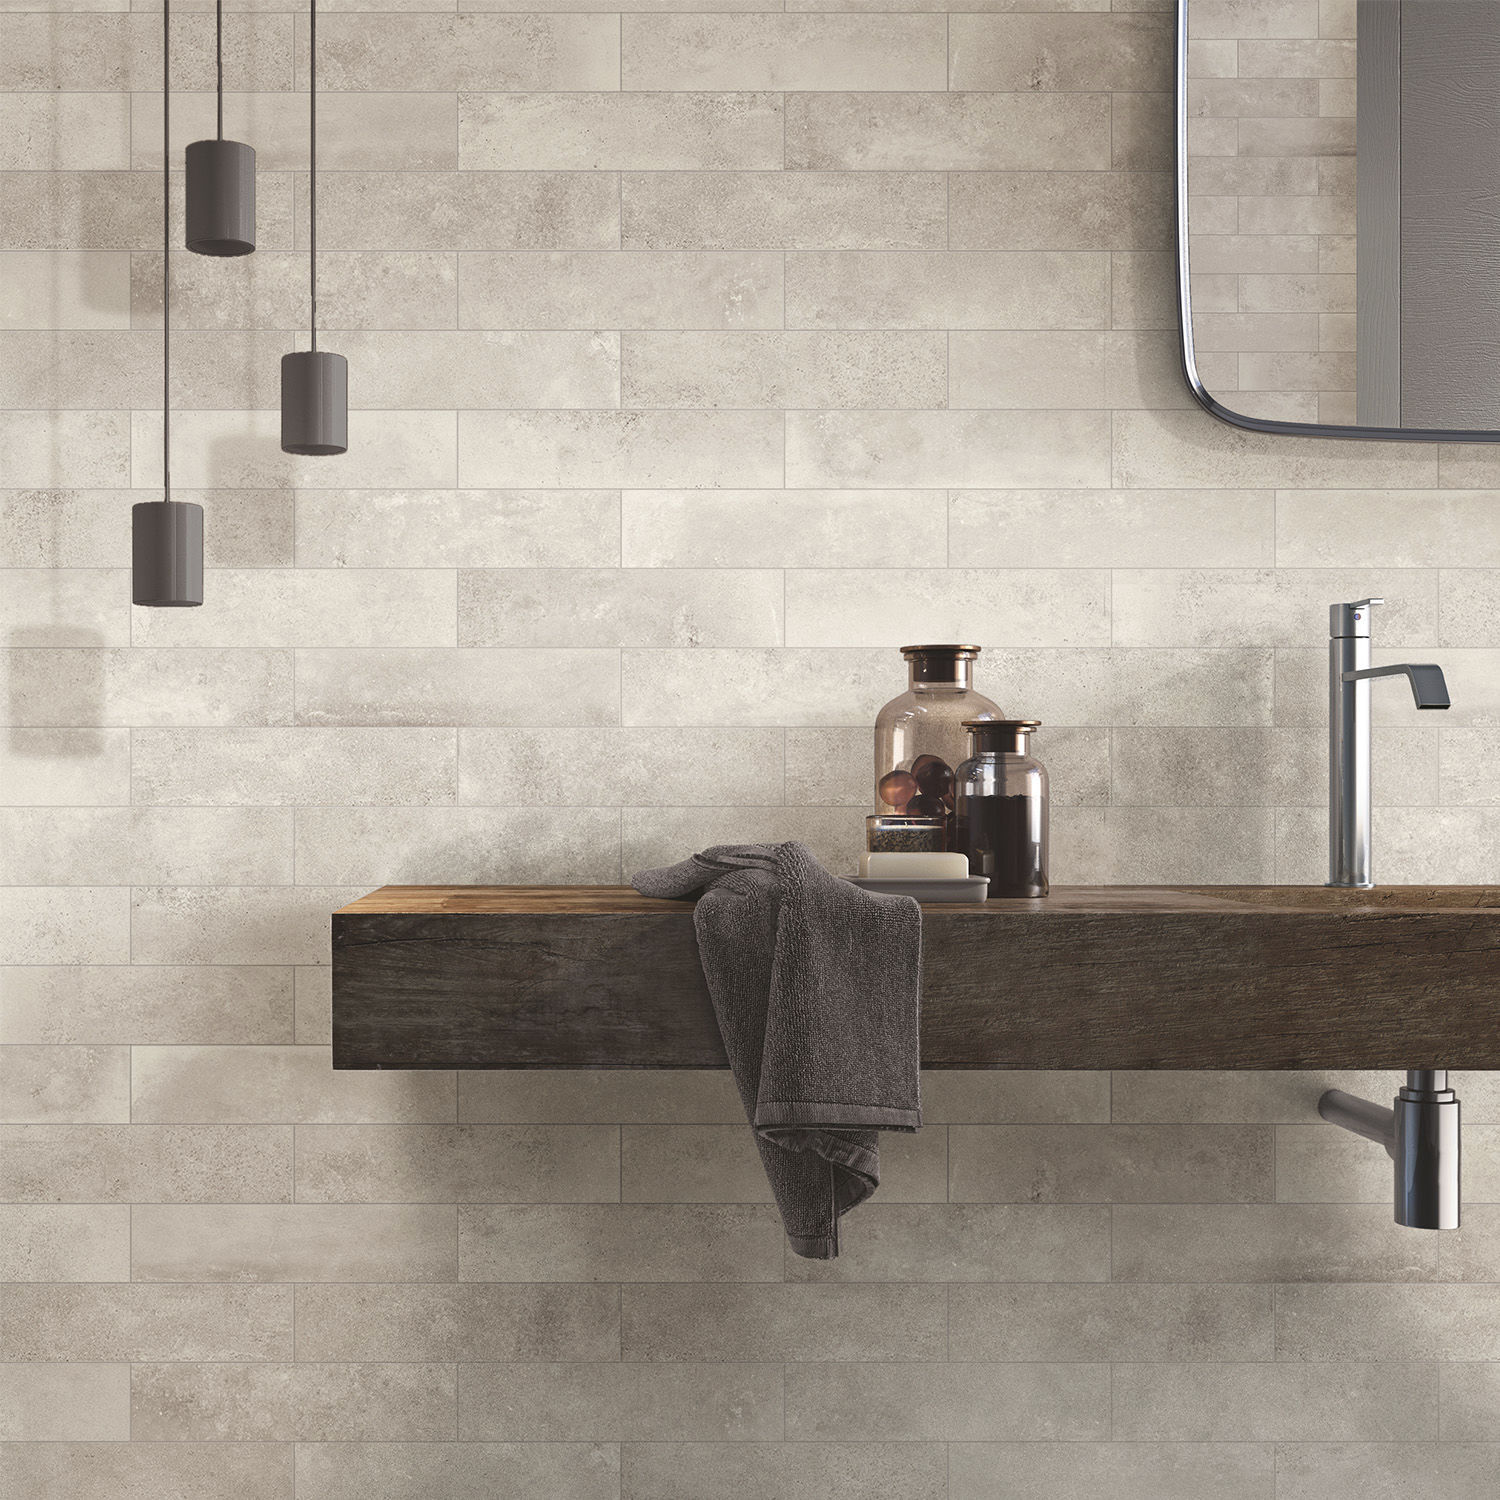 Indoor tile wall floor porcelain stoneware backstage indoor tile wall floor porcelain stoneware backstage bisque dailygadgetfo Gallery